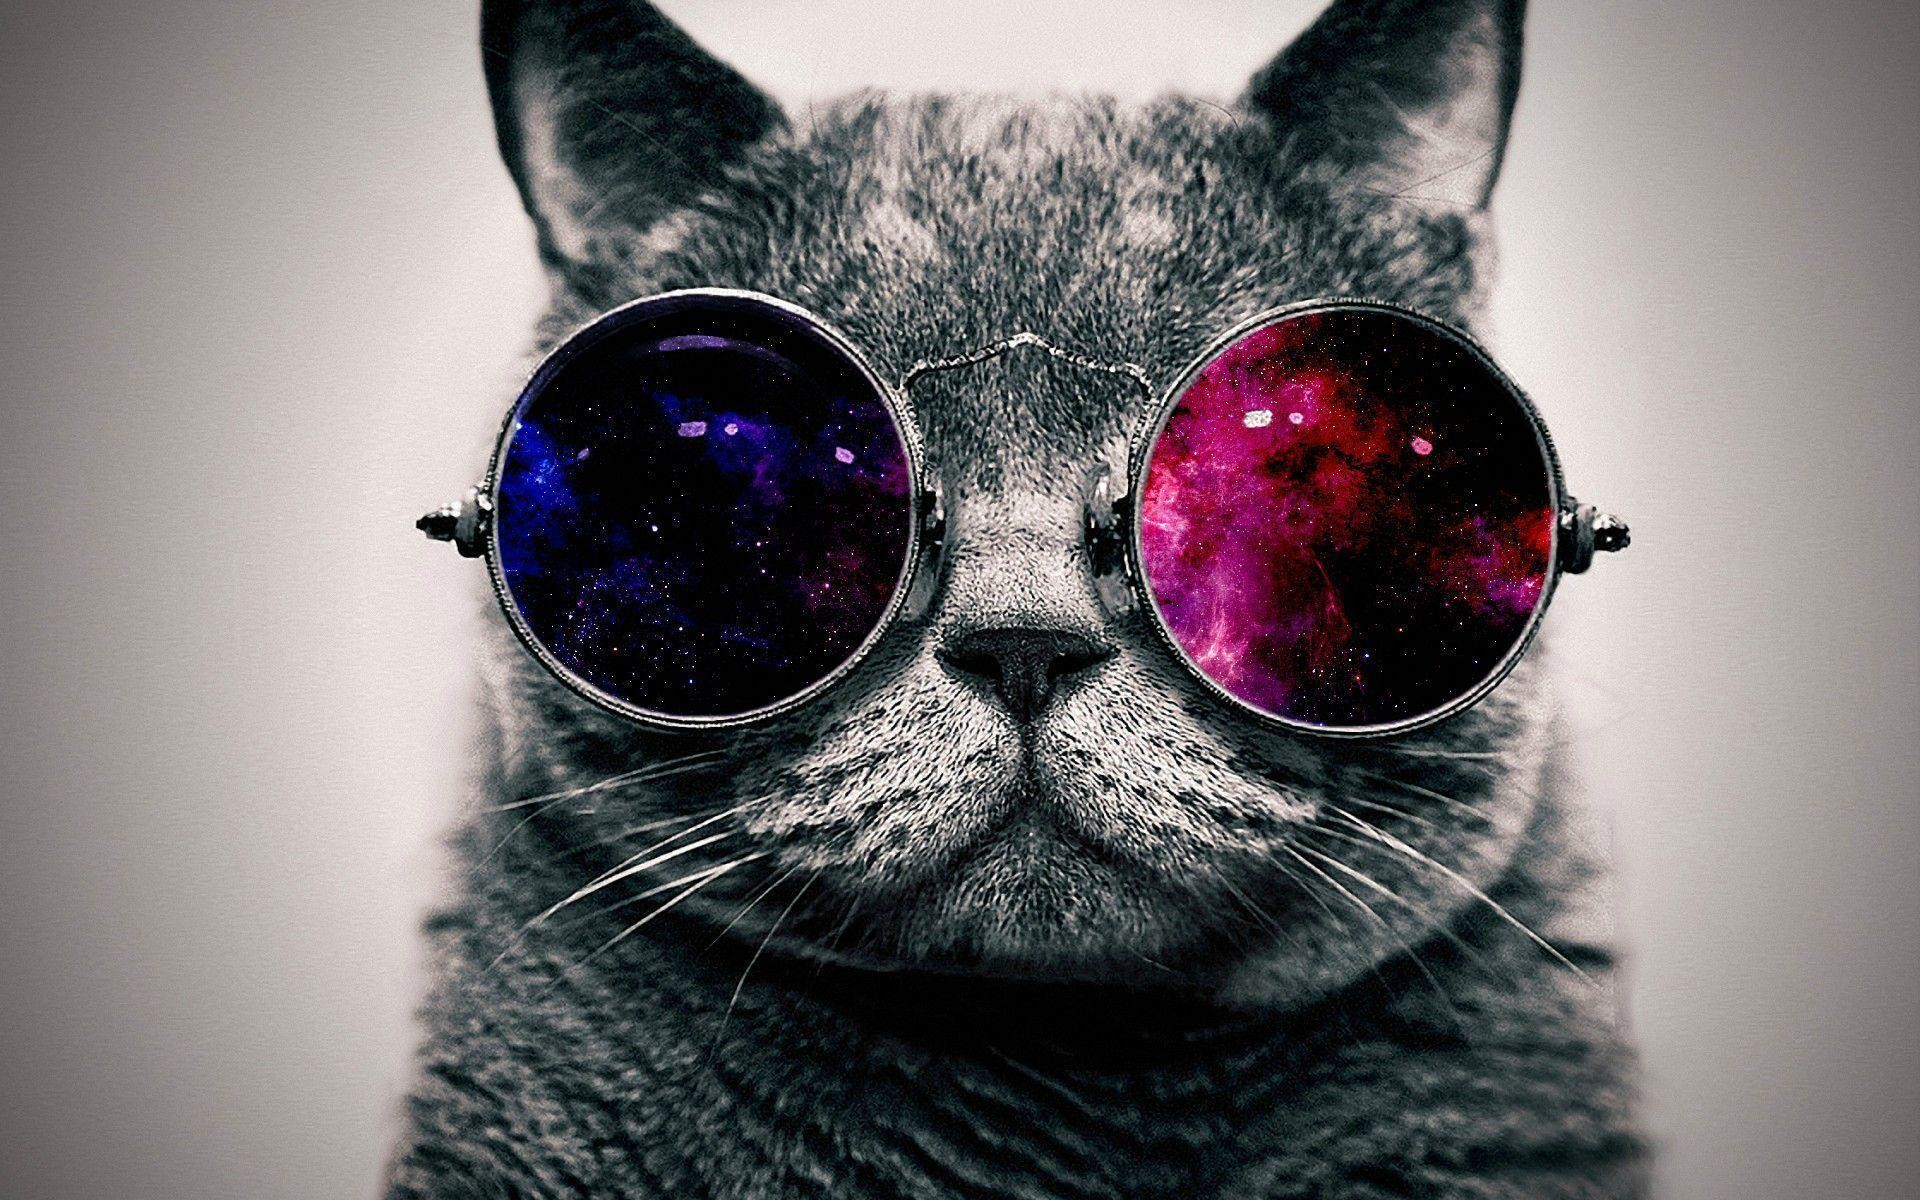 Cool Cat Wallpaper 71 images 1920x1200